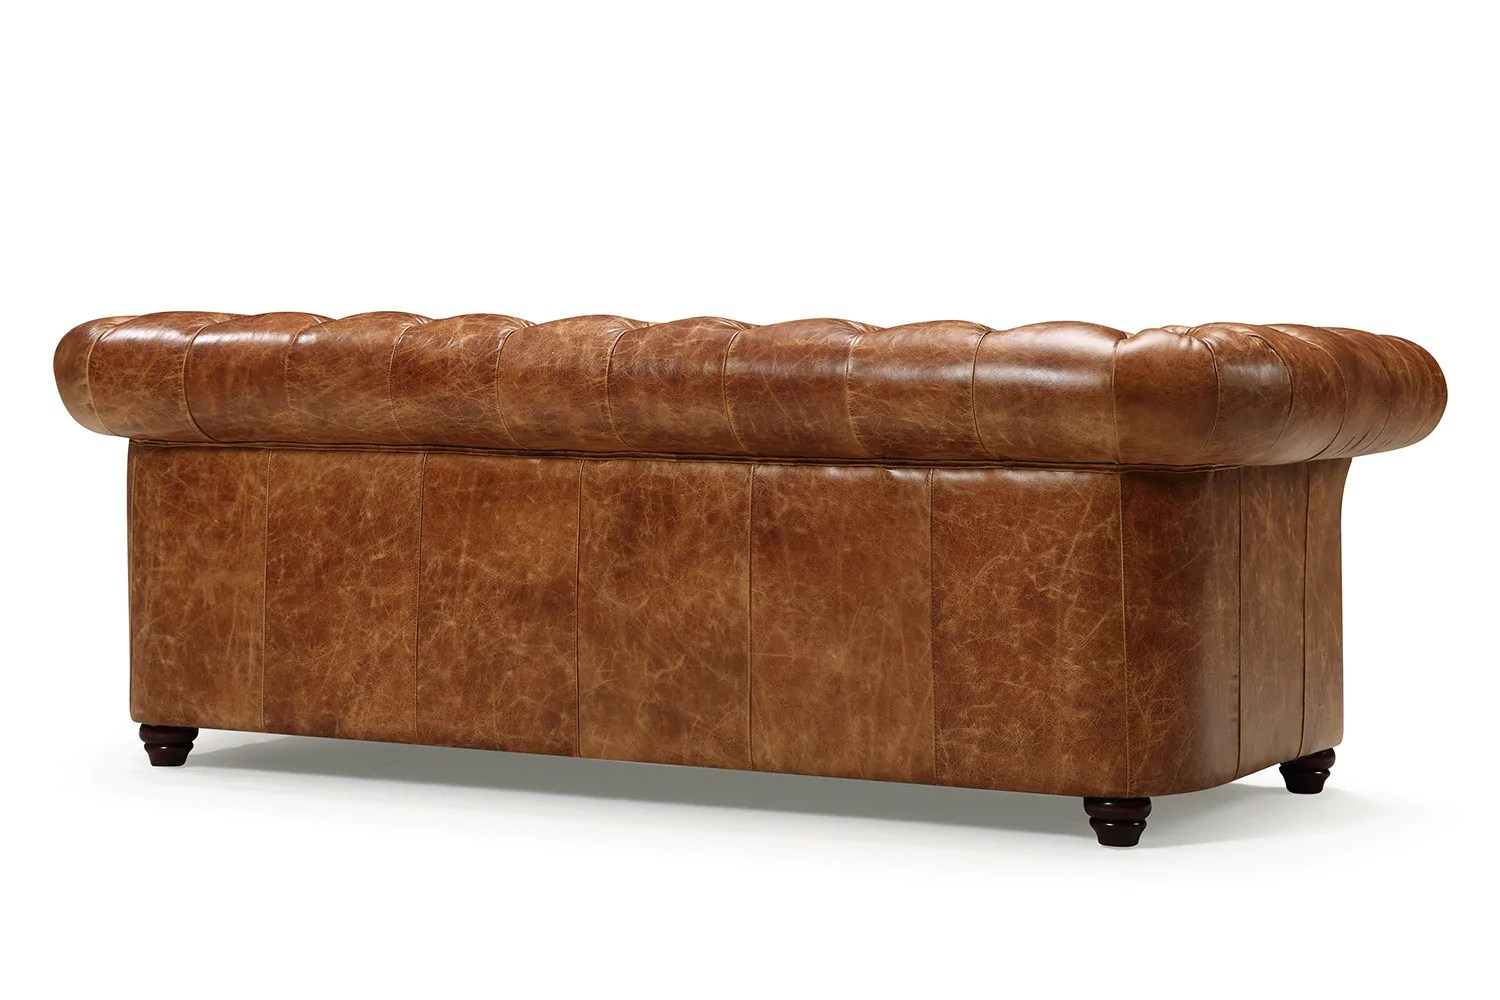 tufted leather sofa cheap higher than window sill the westminster chesterfield rose and moore back of couch